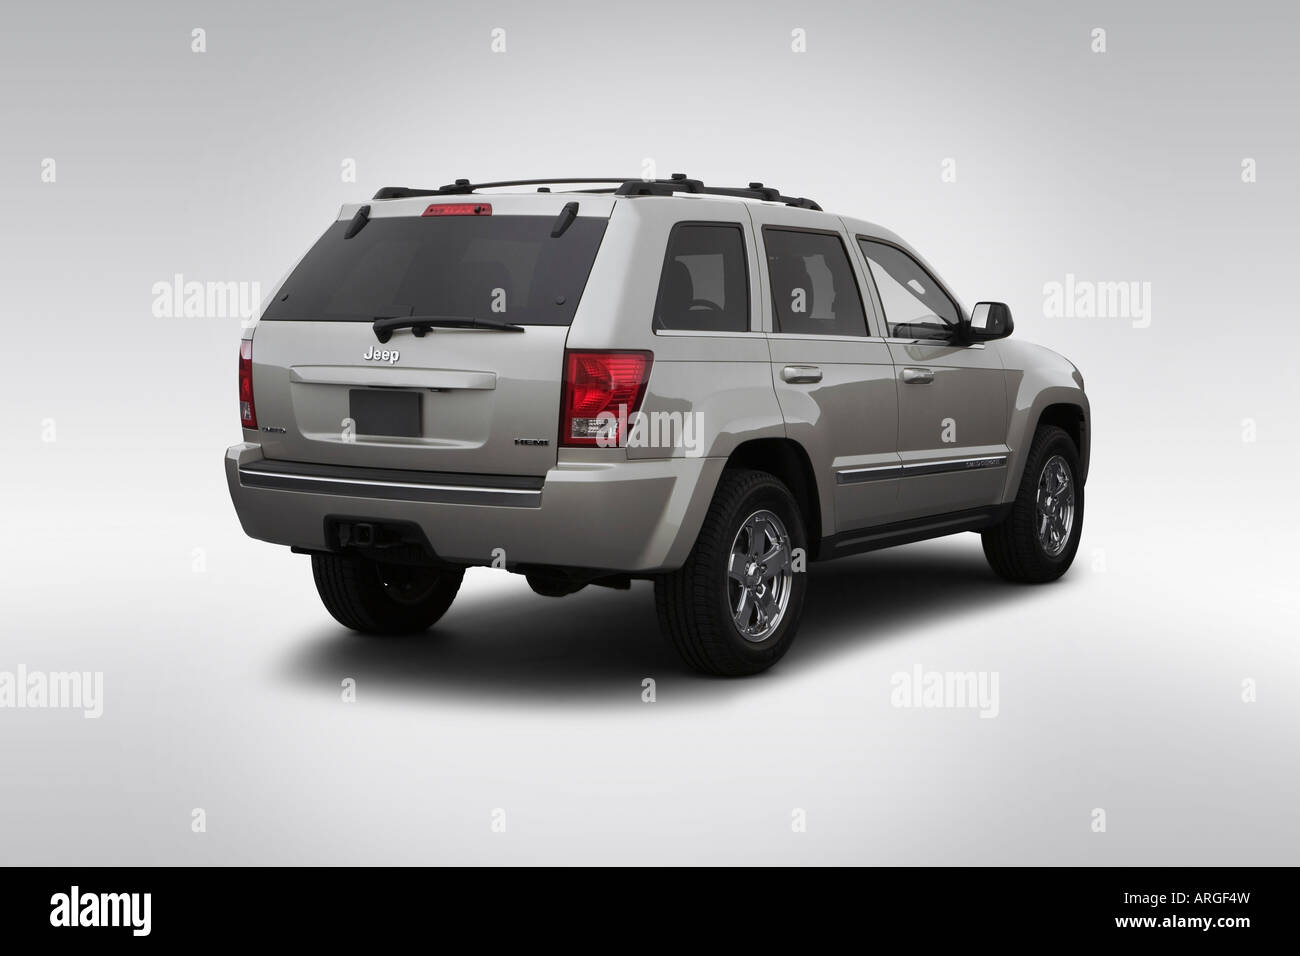 2007 Jeep Grand Cherokee Limited In Gray Rear Angle View Stock Photo Alamy